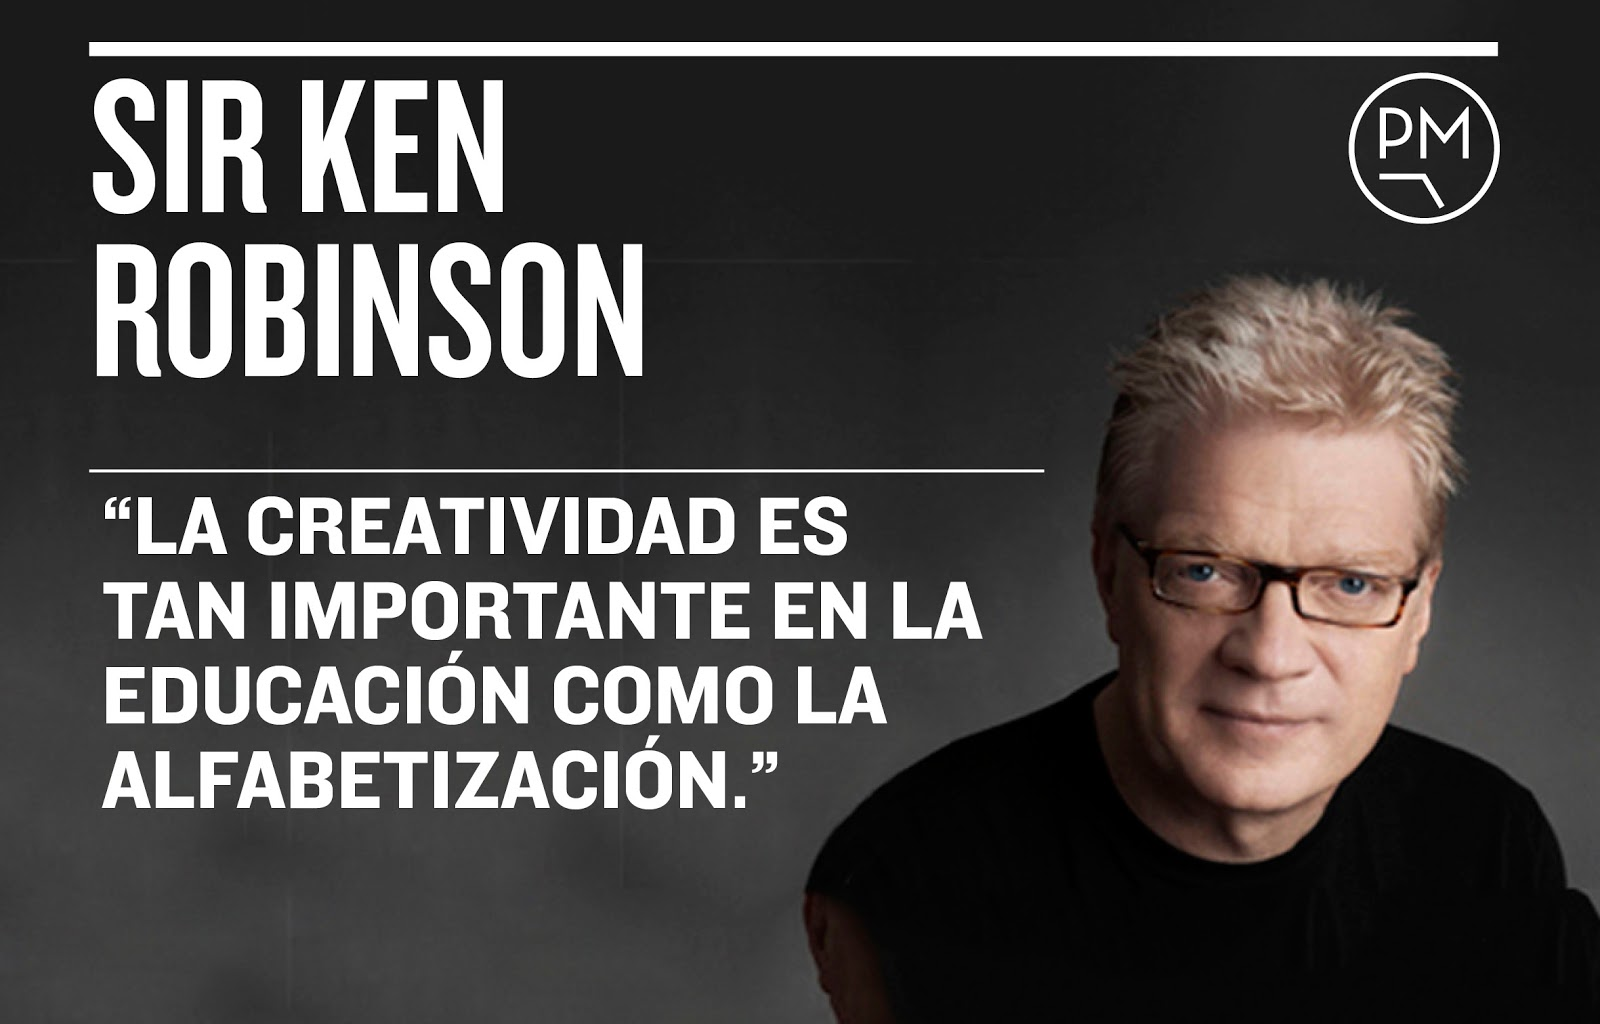 sir ken robinson Sir ken robinson good morning how are you it's been great, hasn't it i've been blown away by the whole thing in fact, i'm leaving.